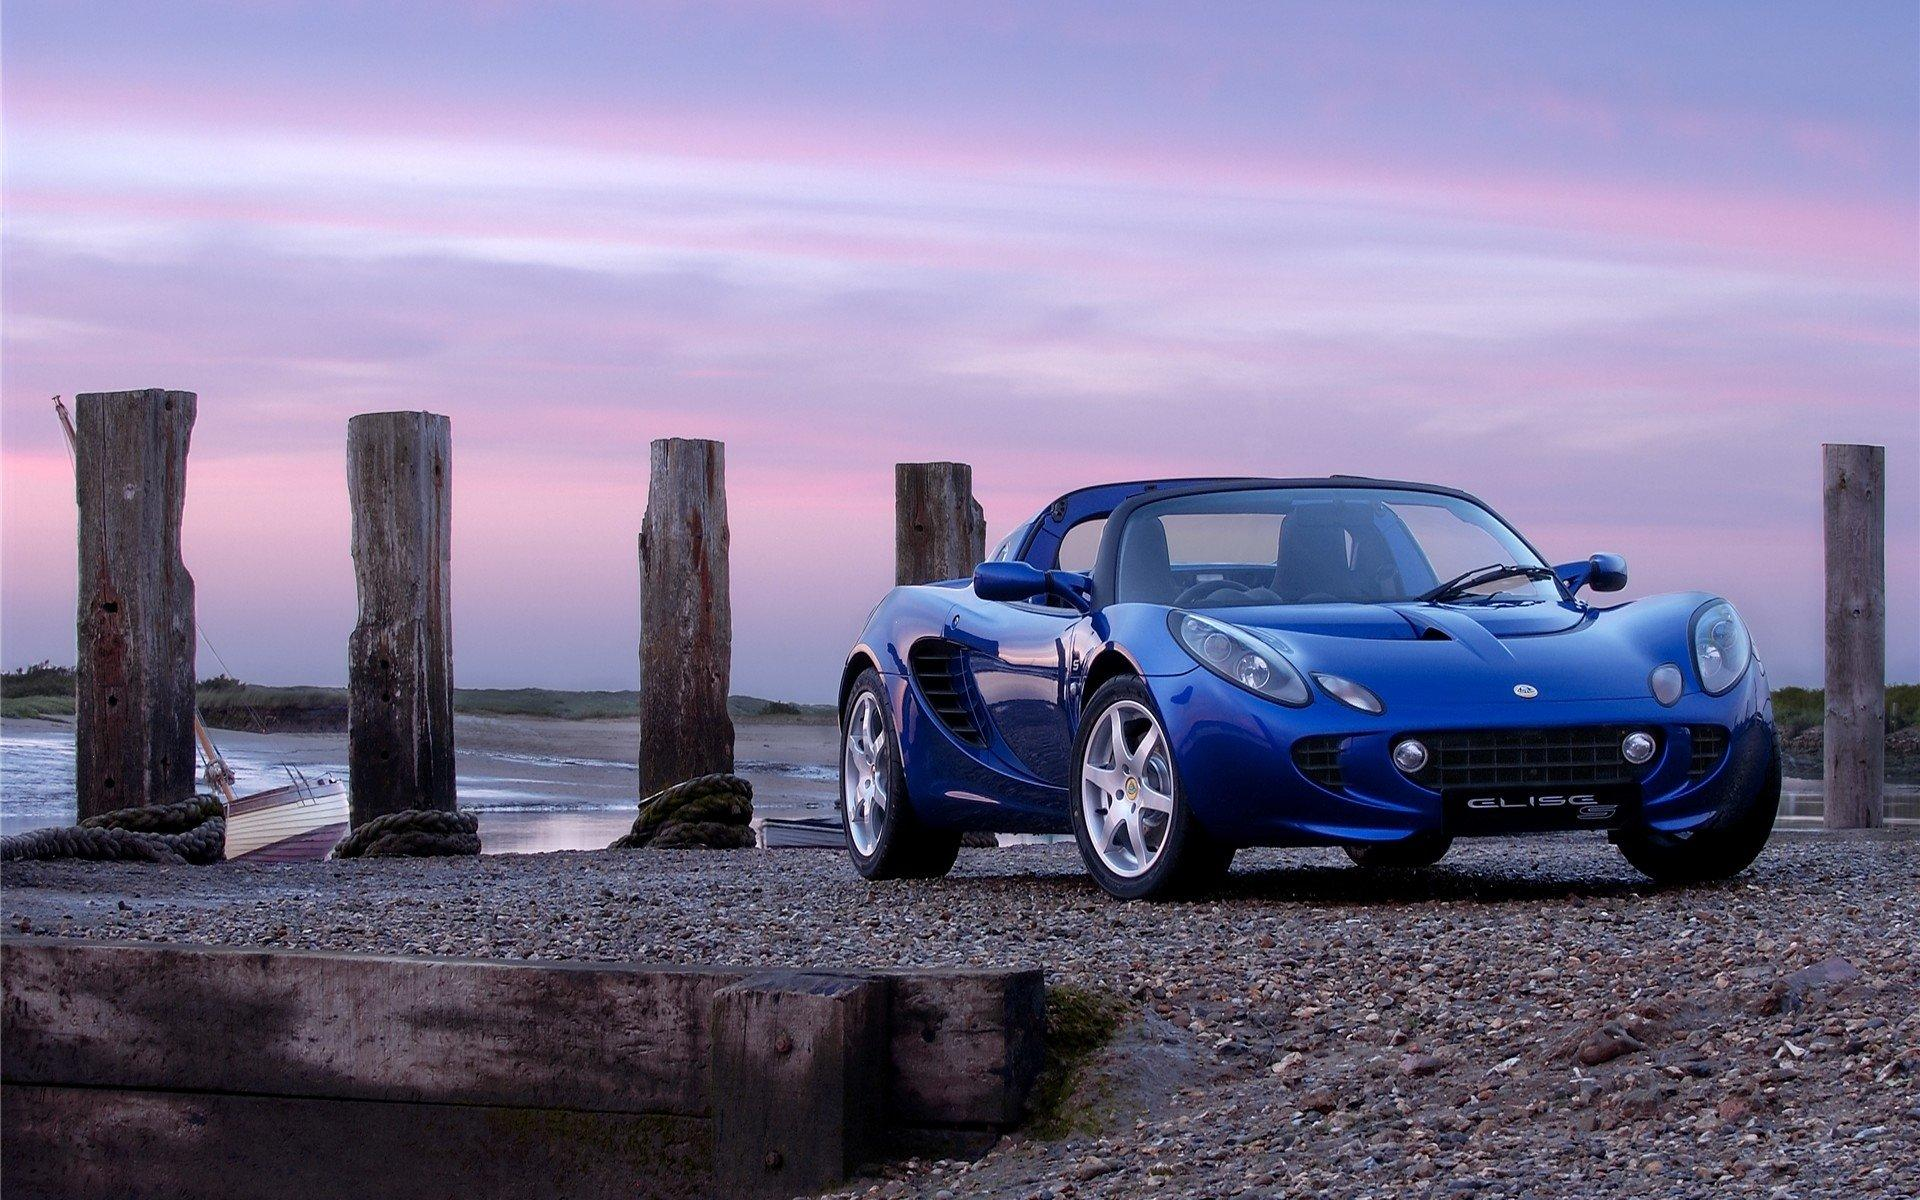 Lotus Elise Wallpapers Wallpaper Cave Images, Photos, Reviews